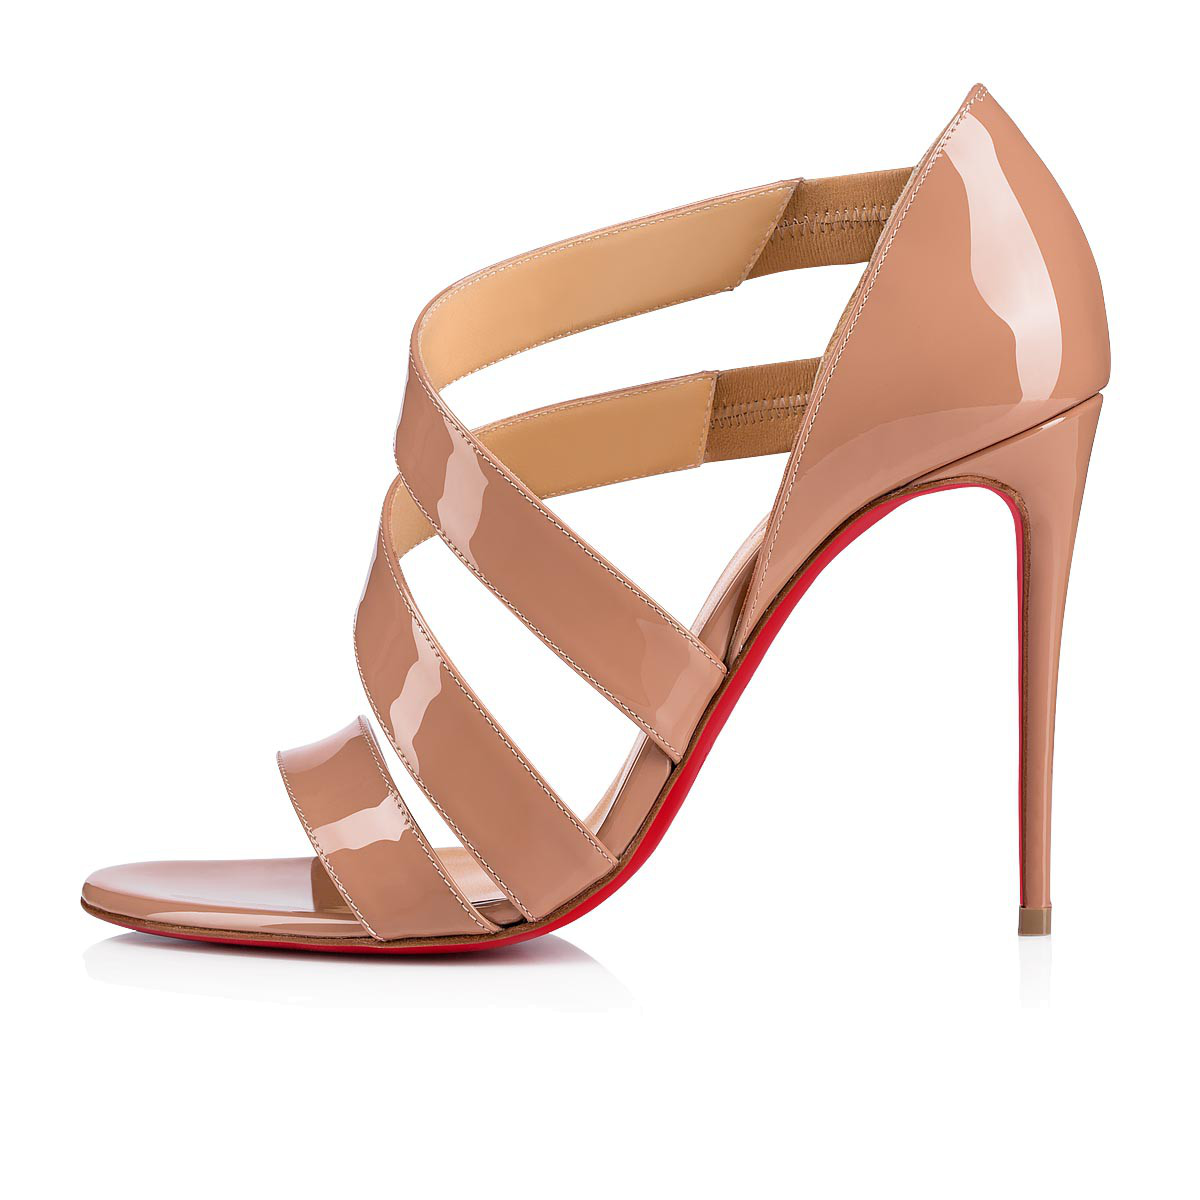 5860aa5d984b Christian Louboutin World Copine 100 Patent Leather Pumps In Nude ...